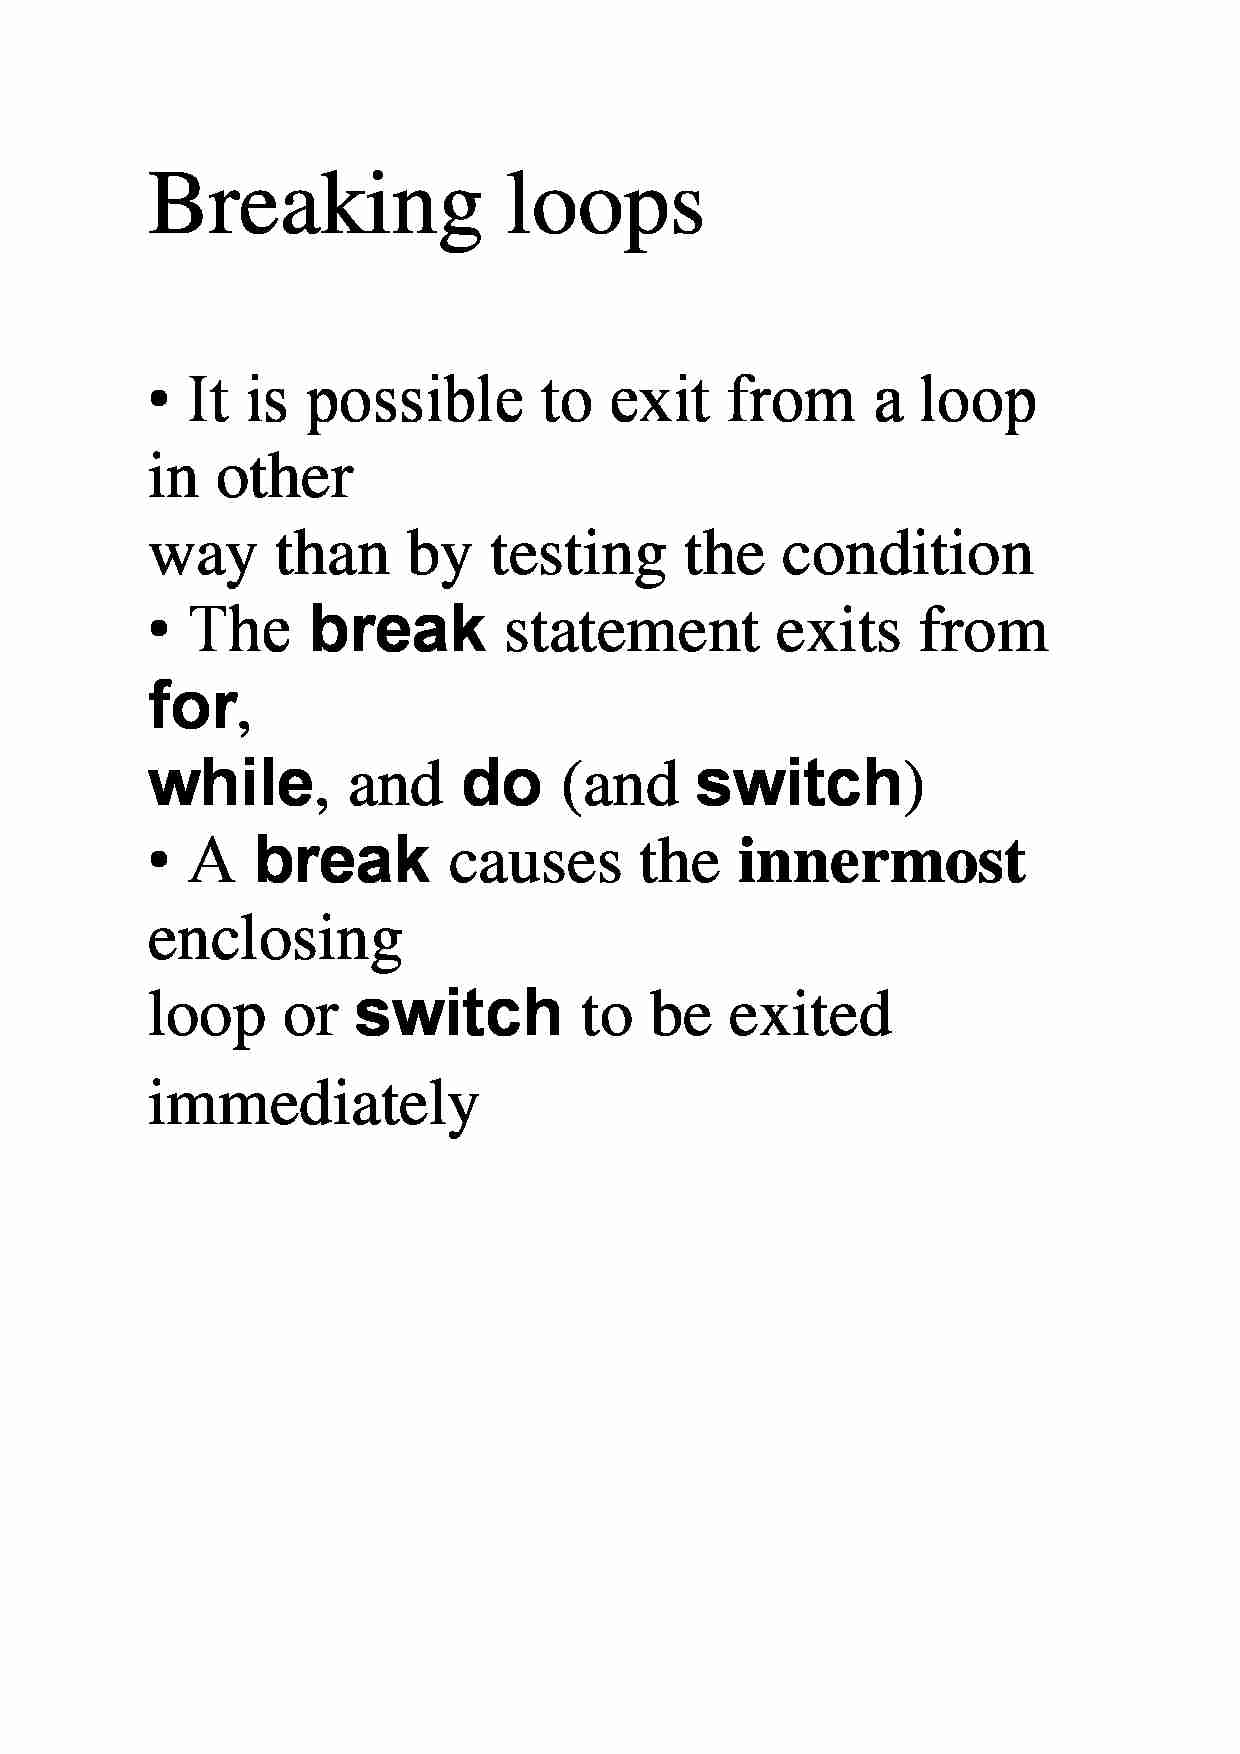 Breaking loops  - examples - strona 1